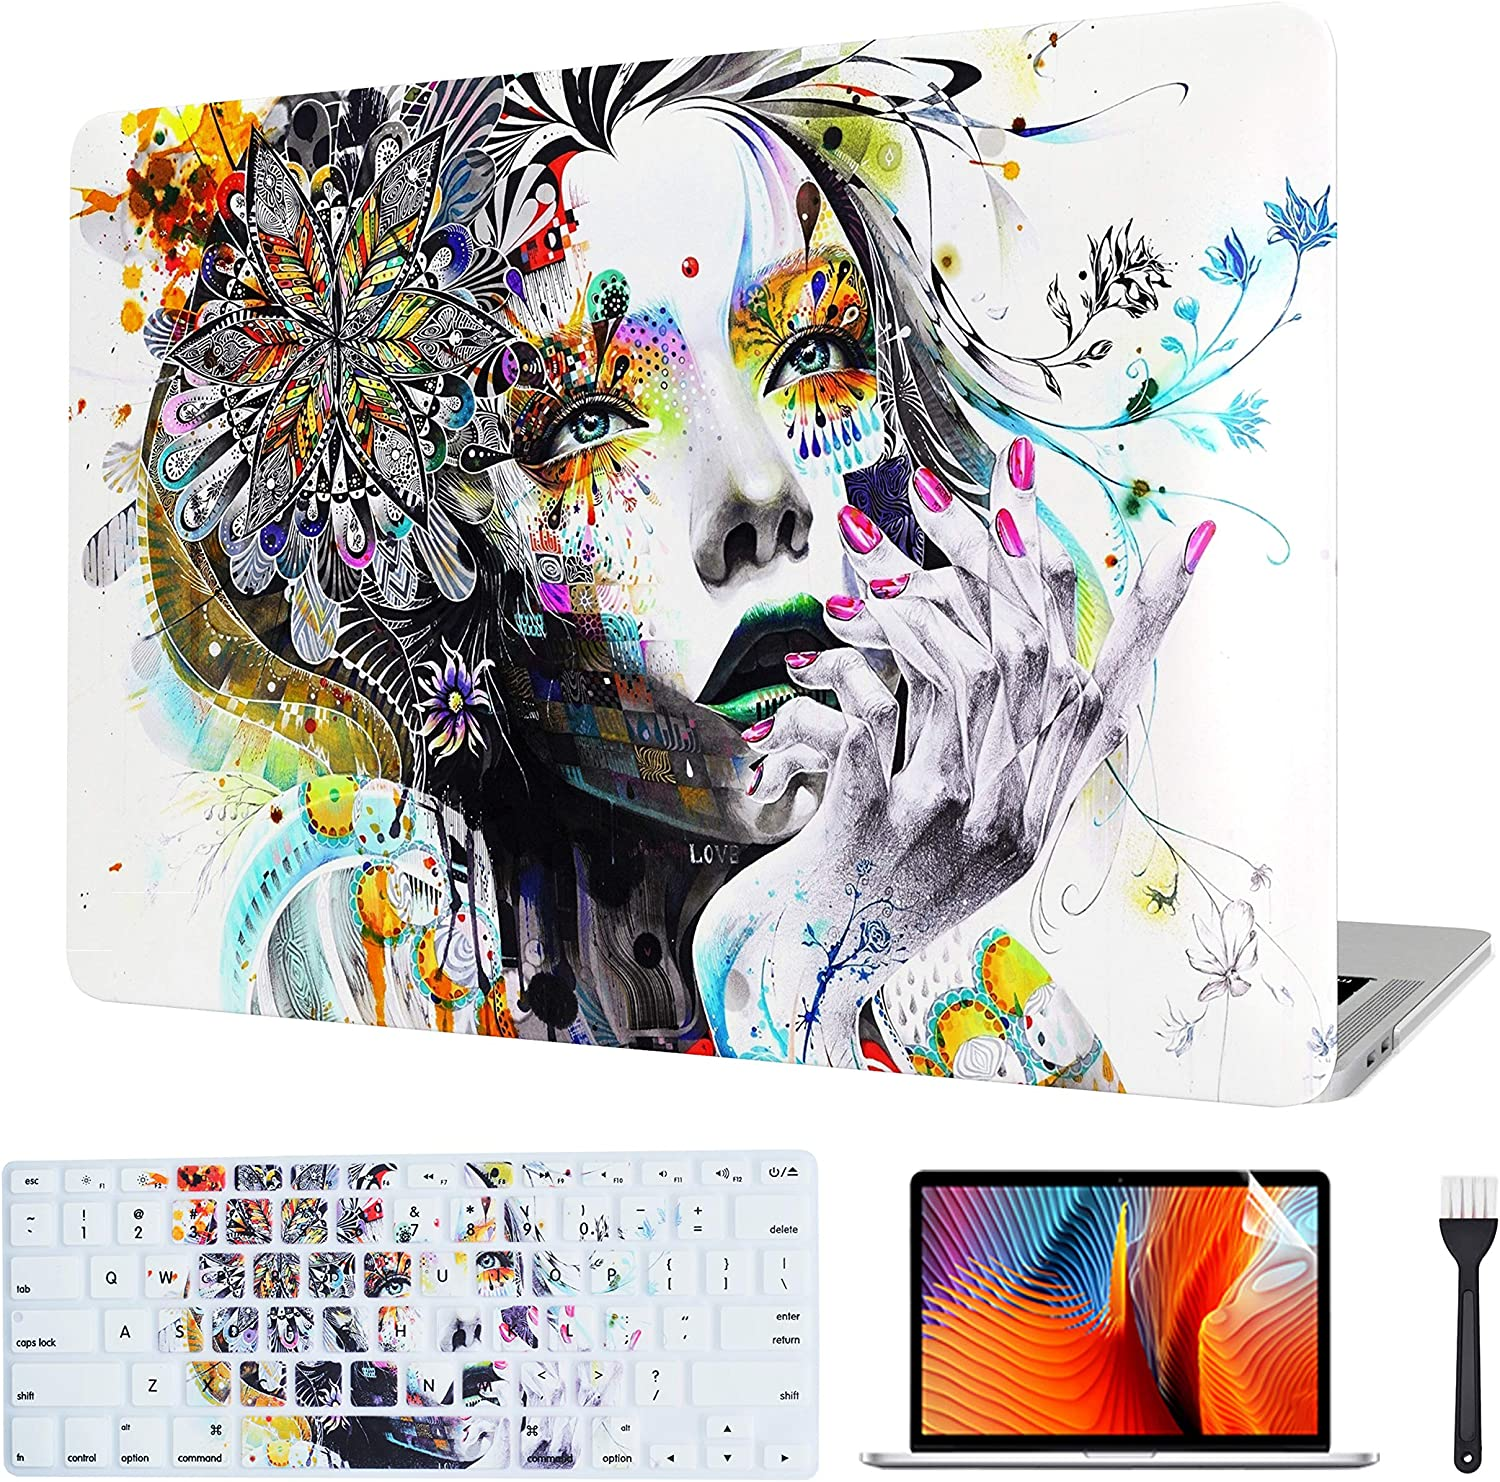 VAESIDA for MacBook Pro 15 Inch Case, Rubberized Protective Hard Laptop Cover Case Shell Set Only Compatible with 2016-2019 Mac Pro 15 with Touch Bar Model: A1707/A1990, Hand-Drawn Girl